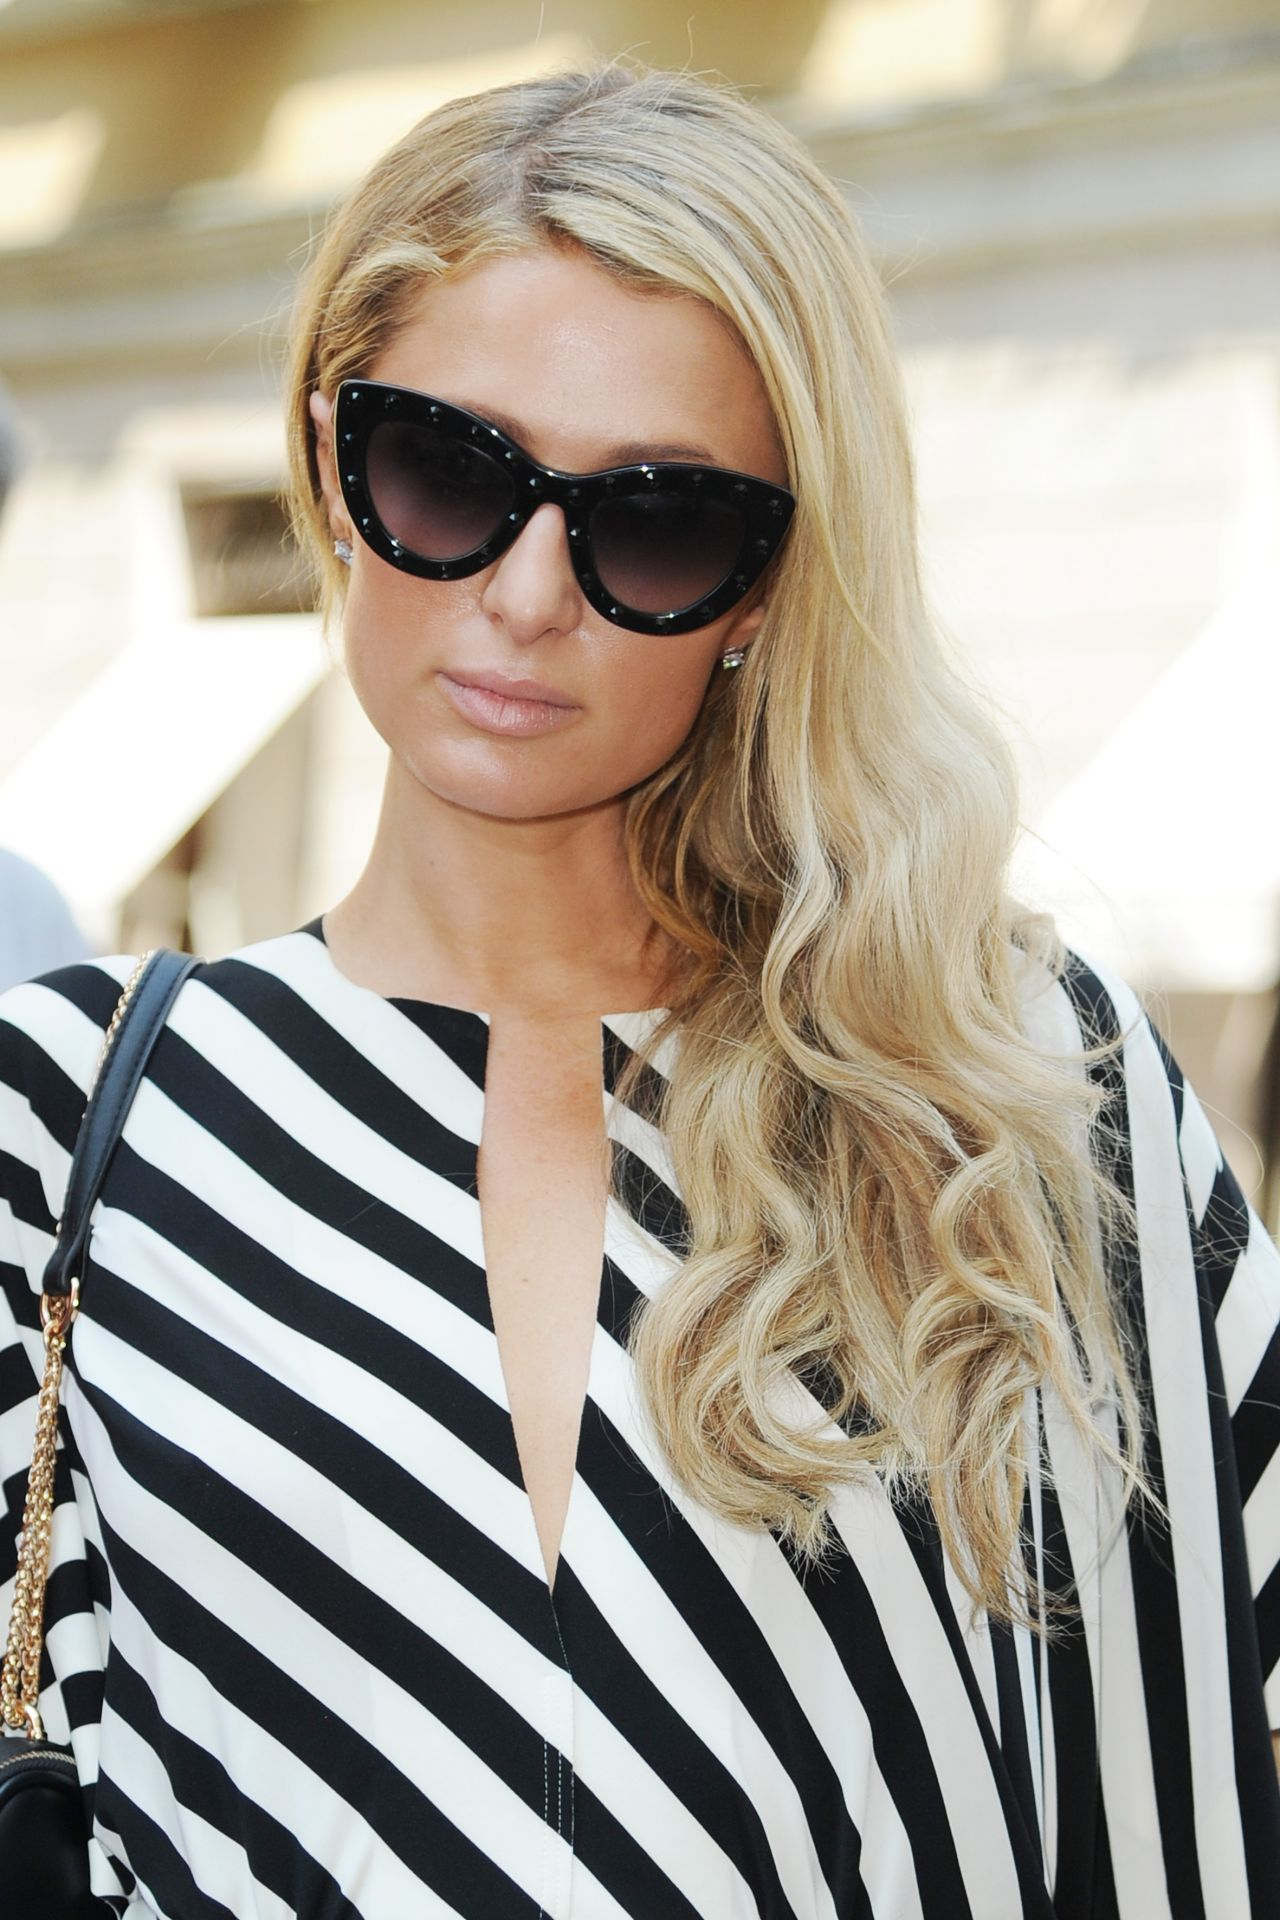 Paris hilton recent photos-6889